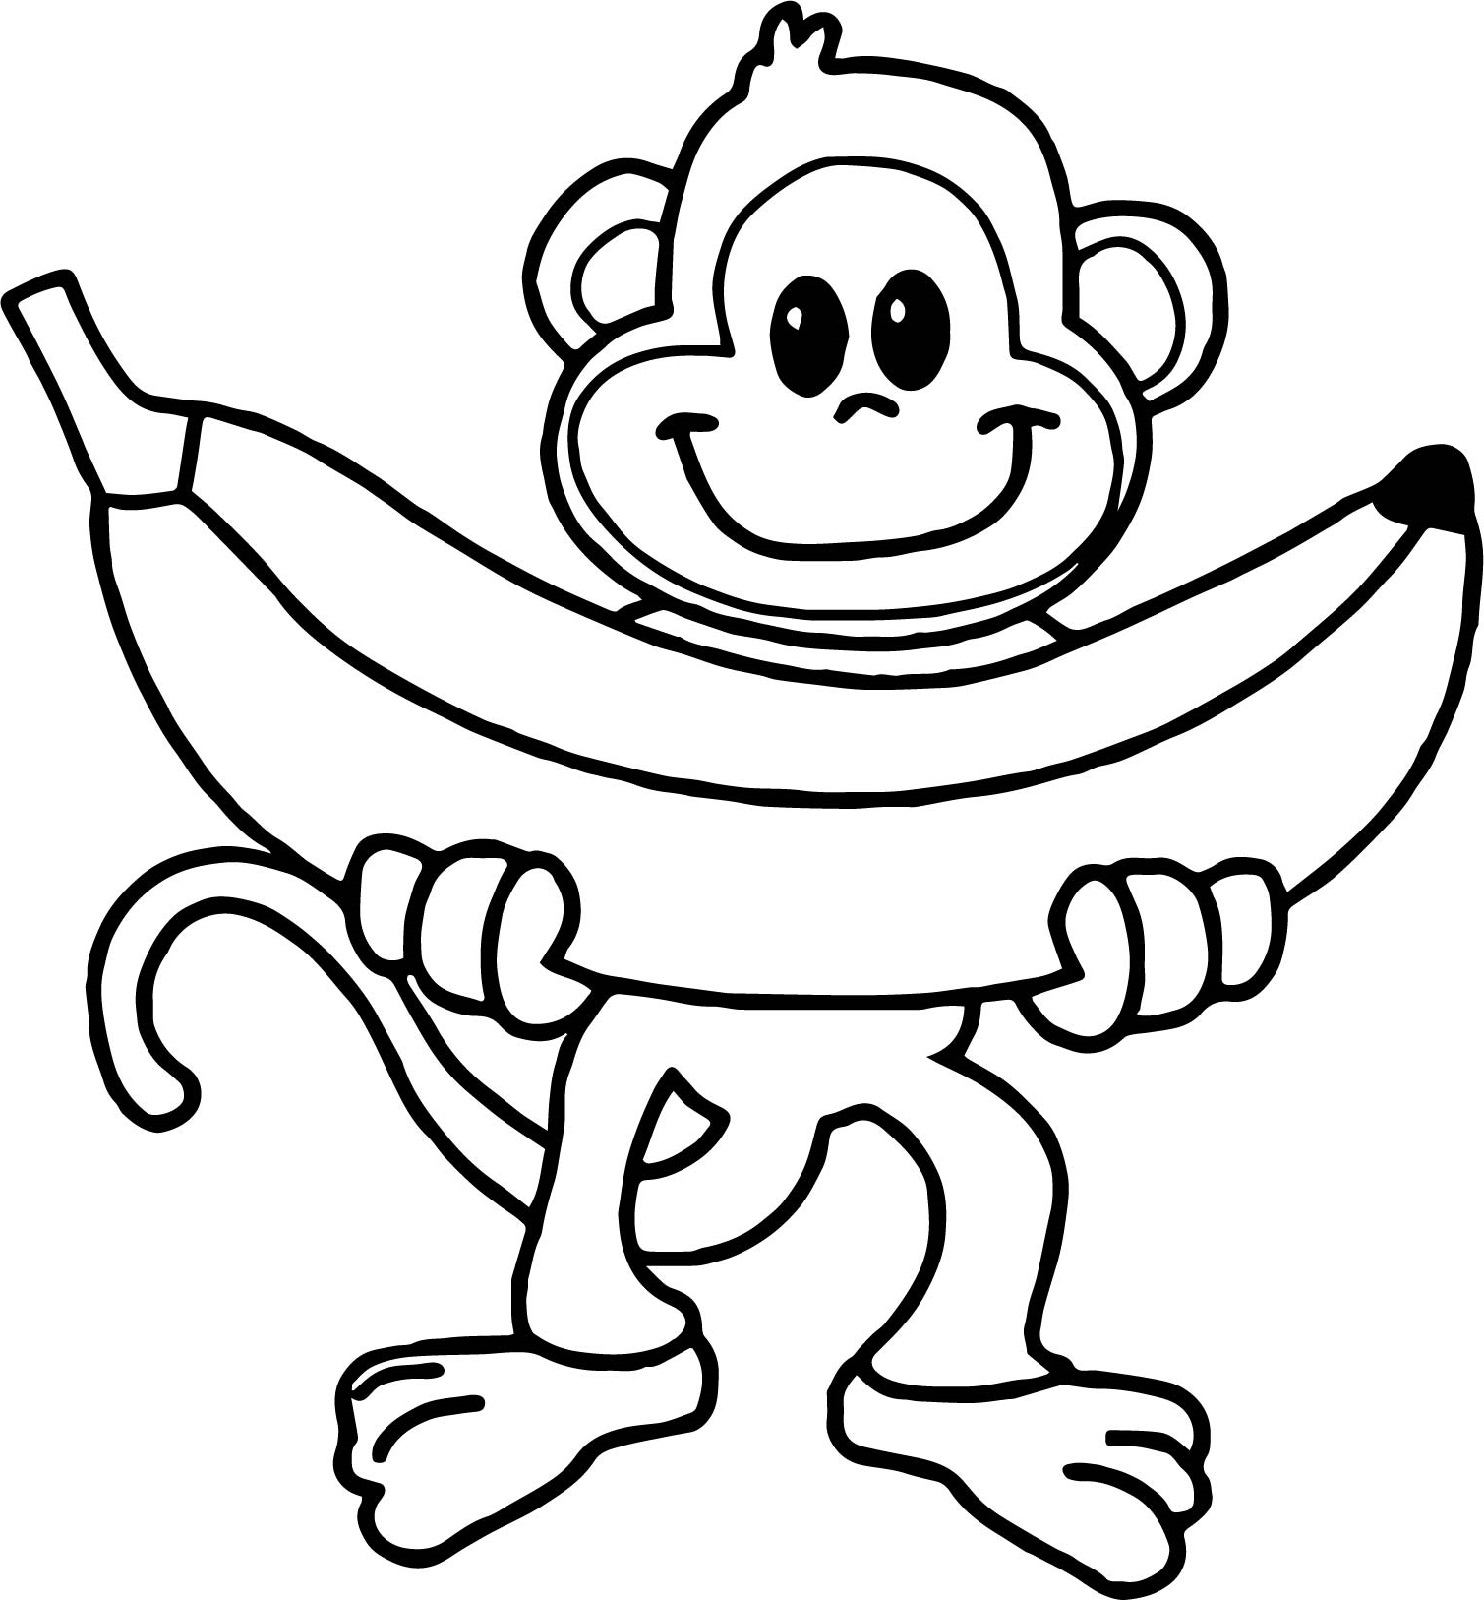 monkey coloring pictures monkeys to download for free monkeys kids coloring pages coloring monkey pictures